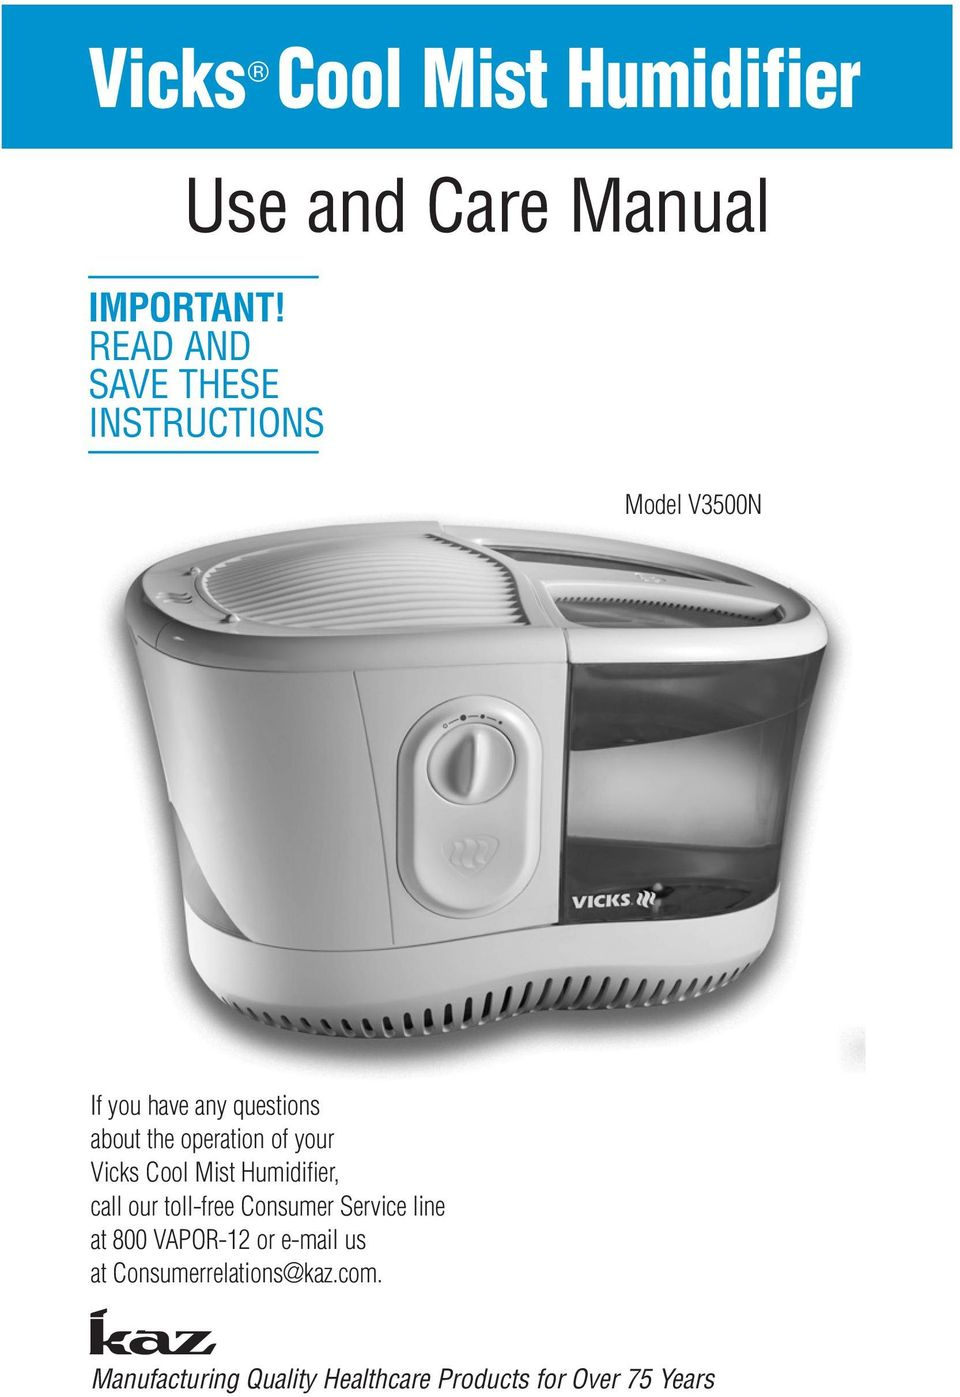 operation of your Vicks Cool Mist Humidifier, call our toll-free Consumer Service line